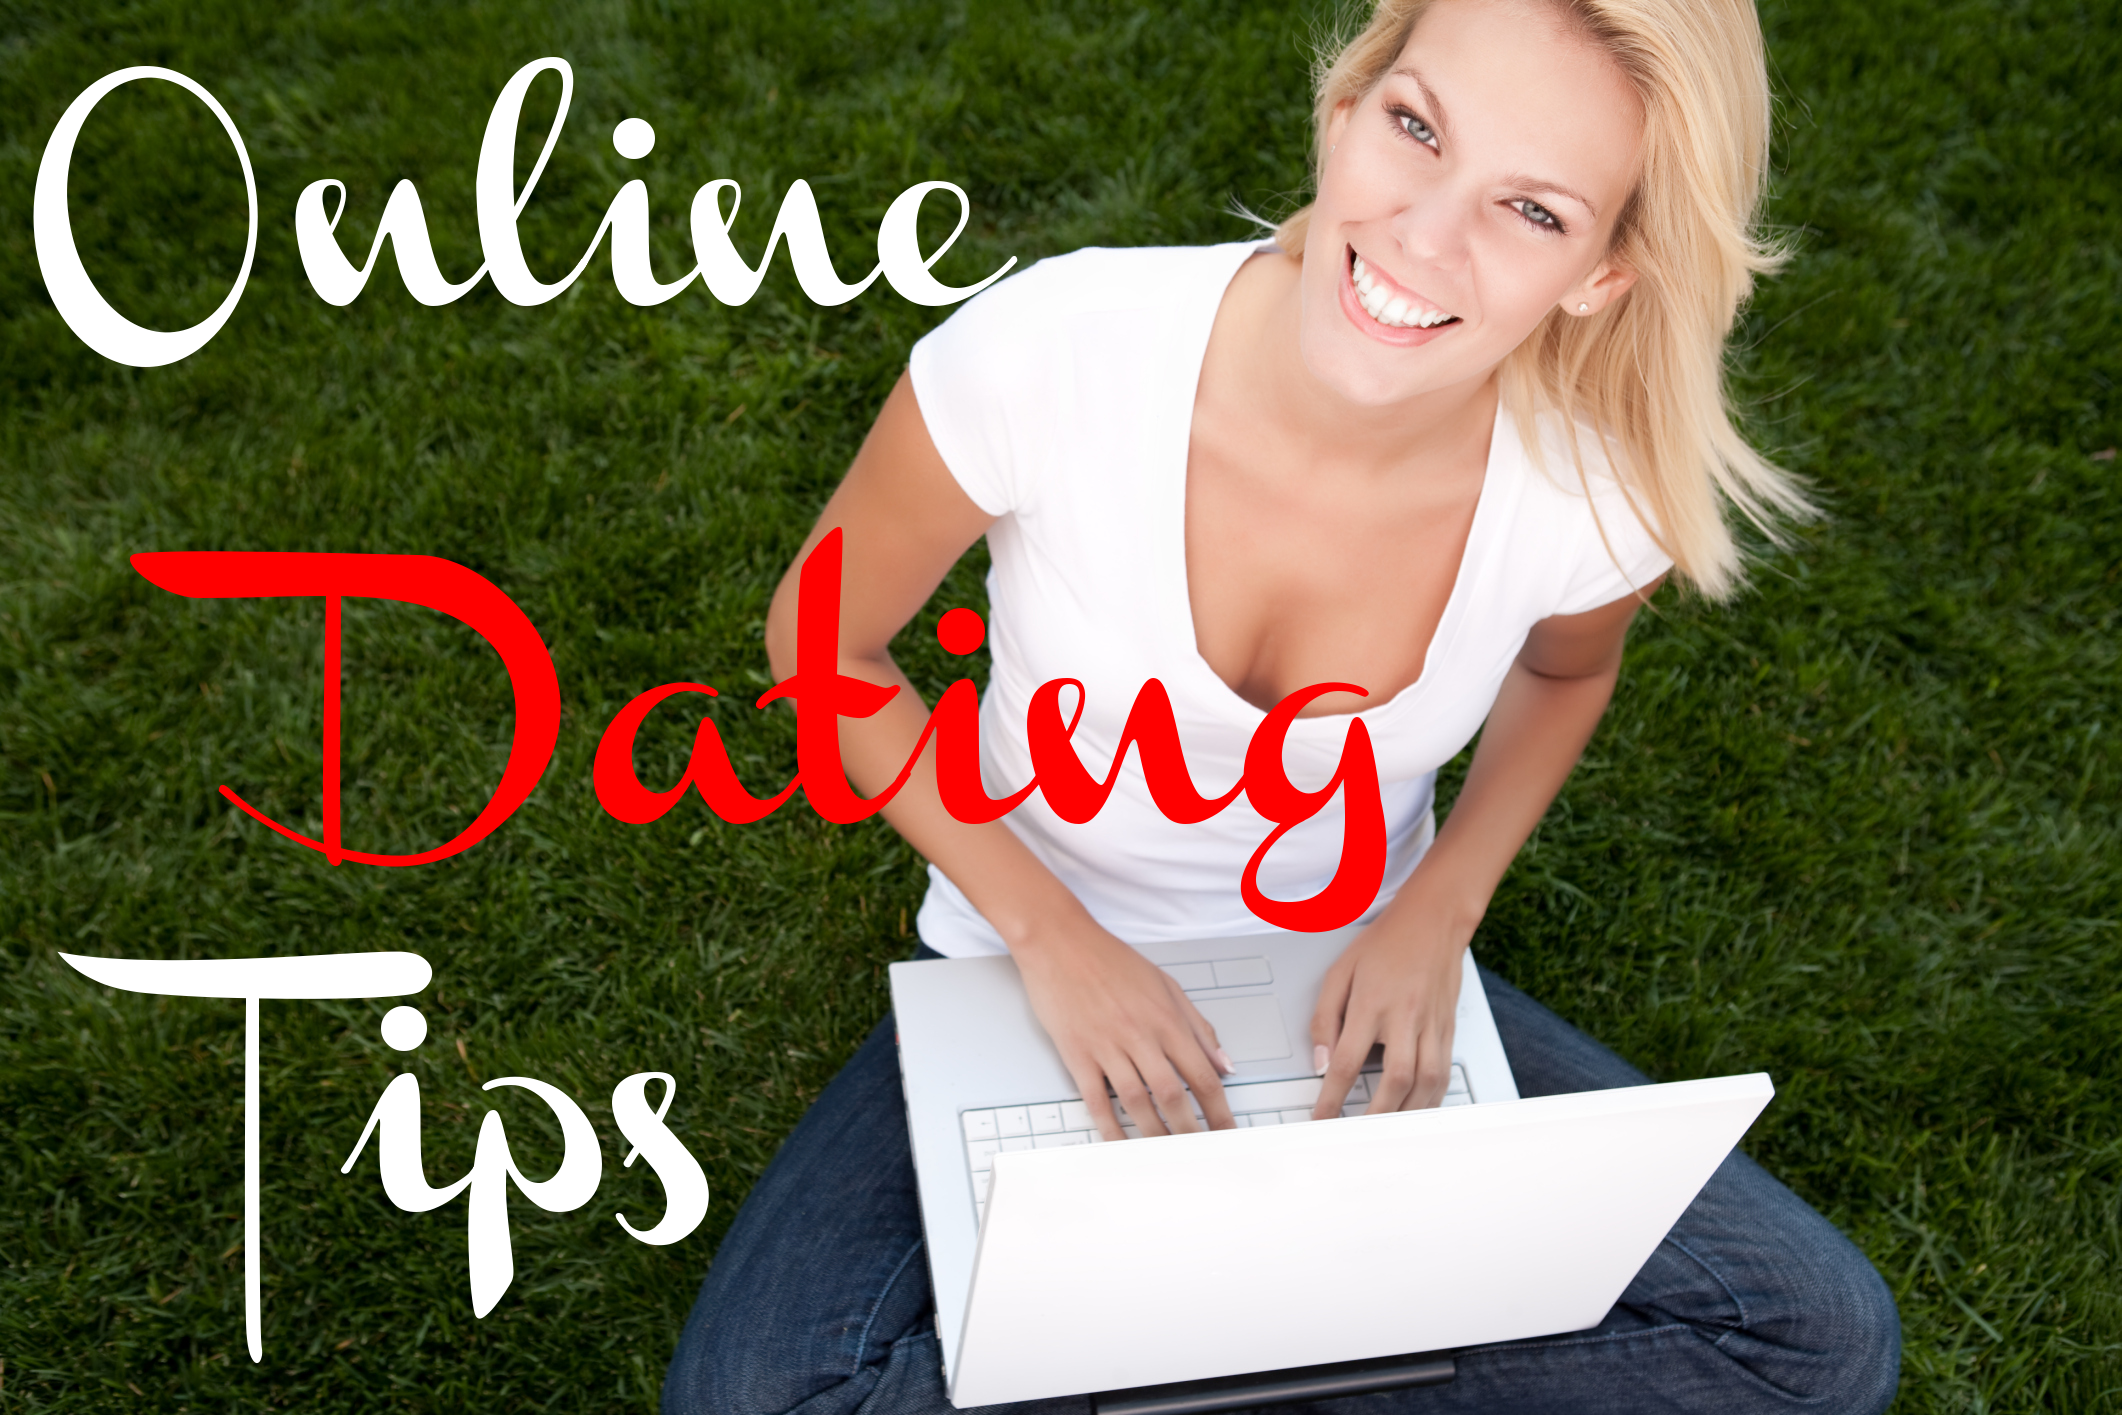 online dating the rules No matter if you are a dating pro or just got back in the dating game, take these precautions to protect yourself here are some rules you should always follow to ensure dating safety.